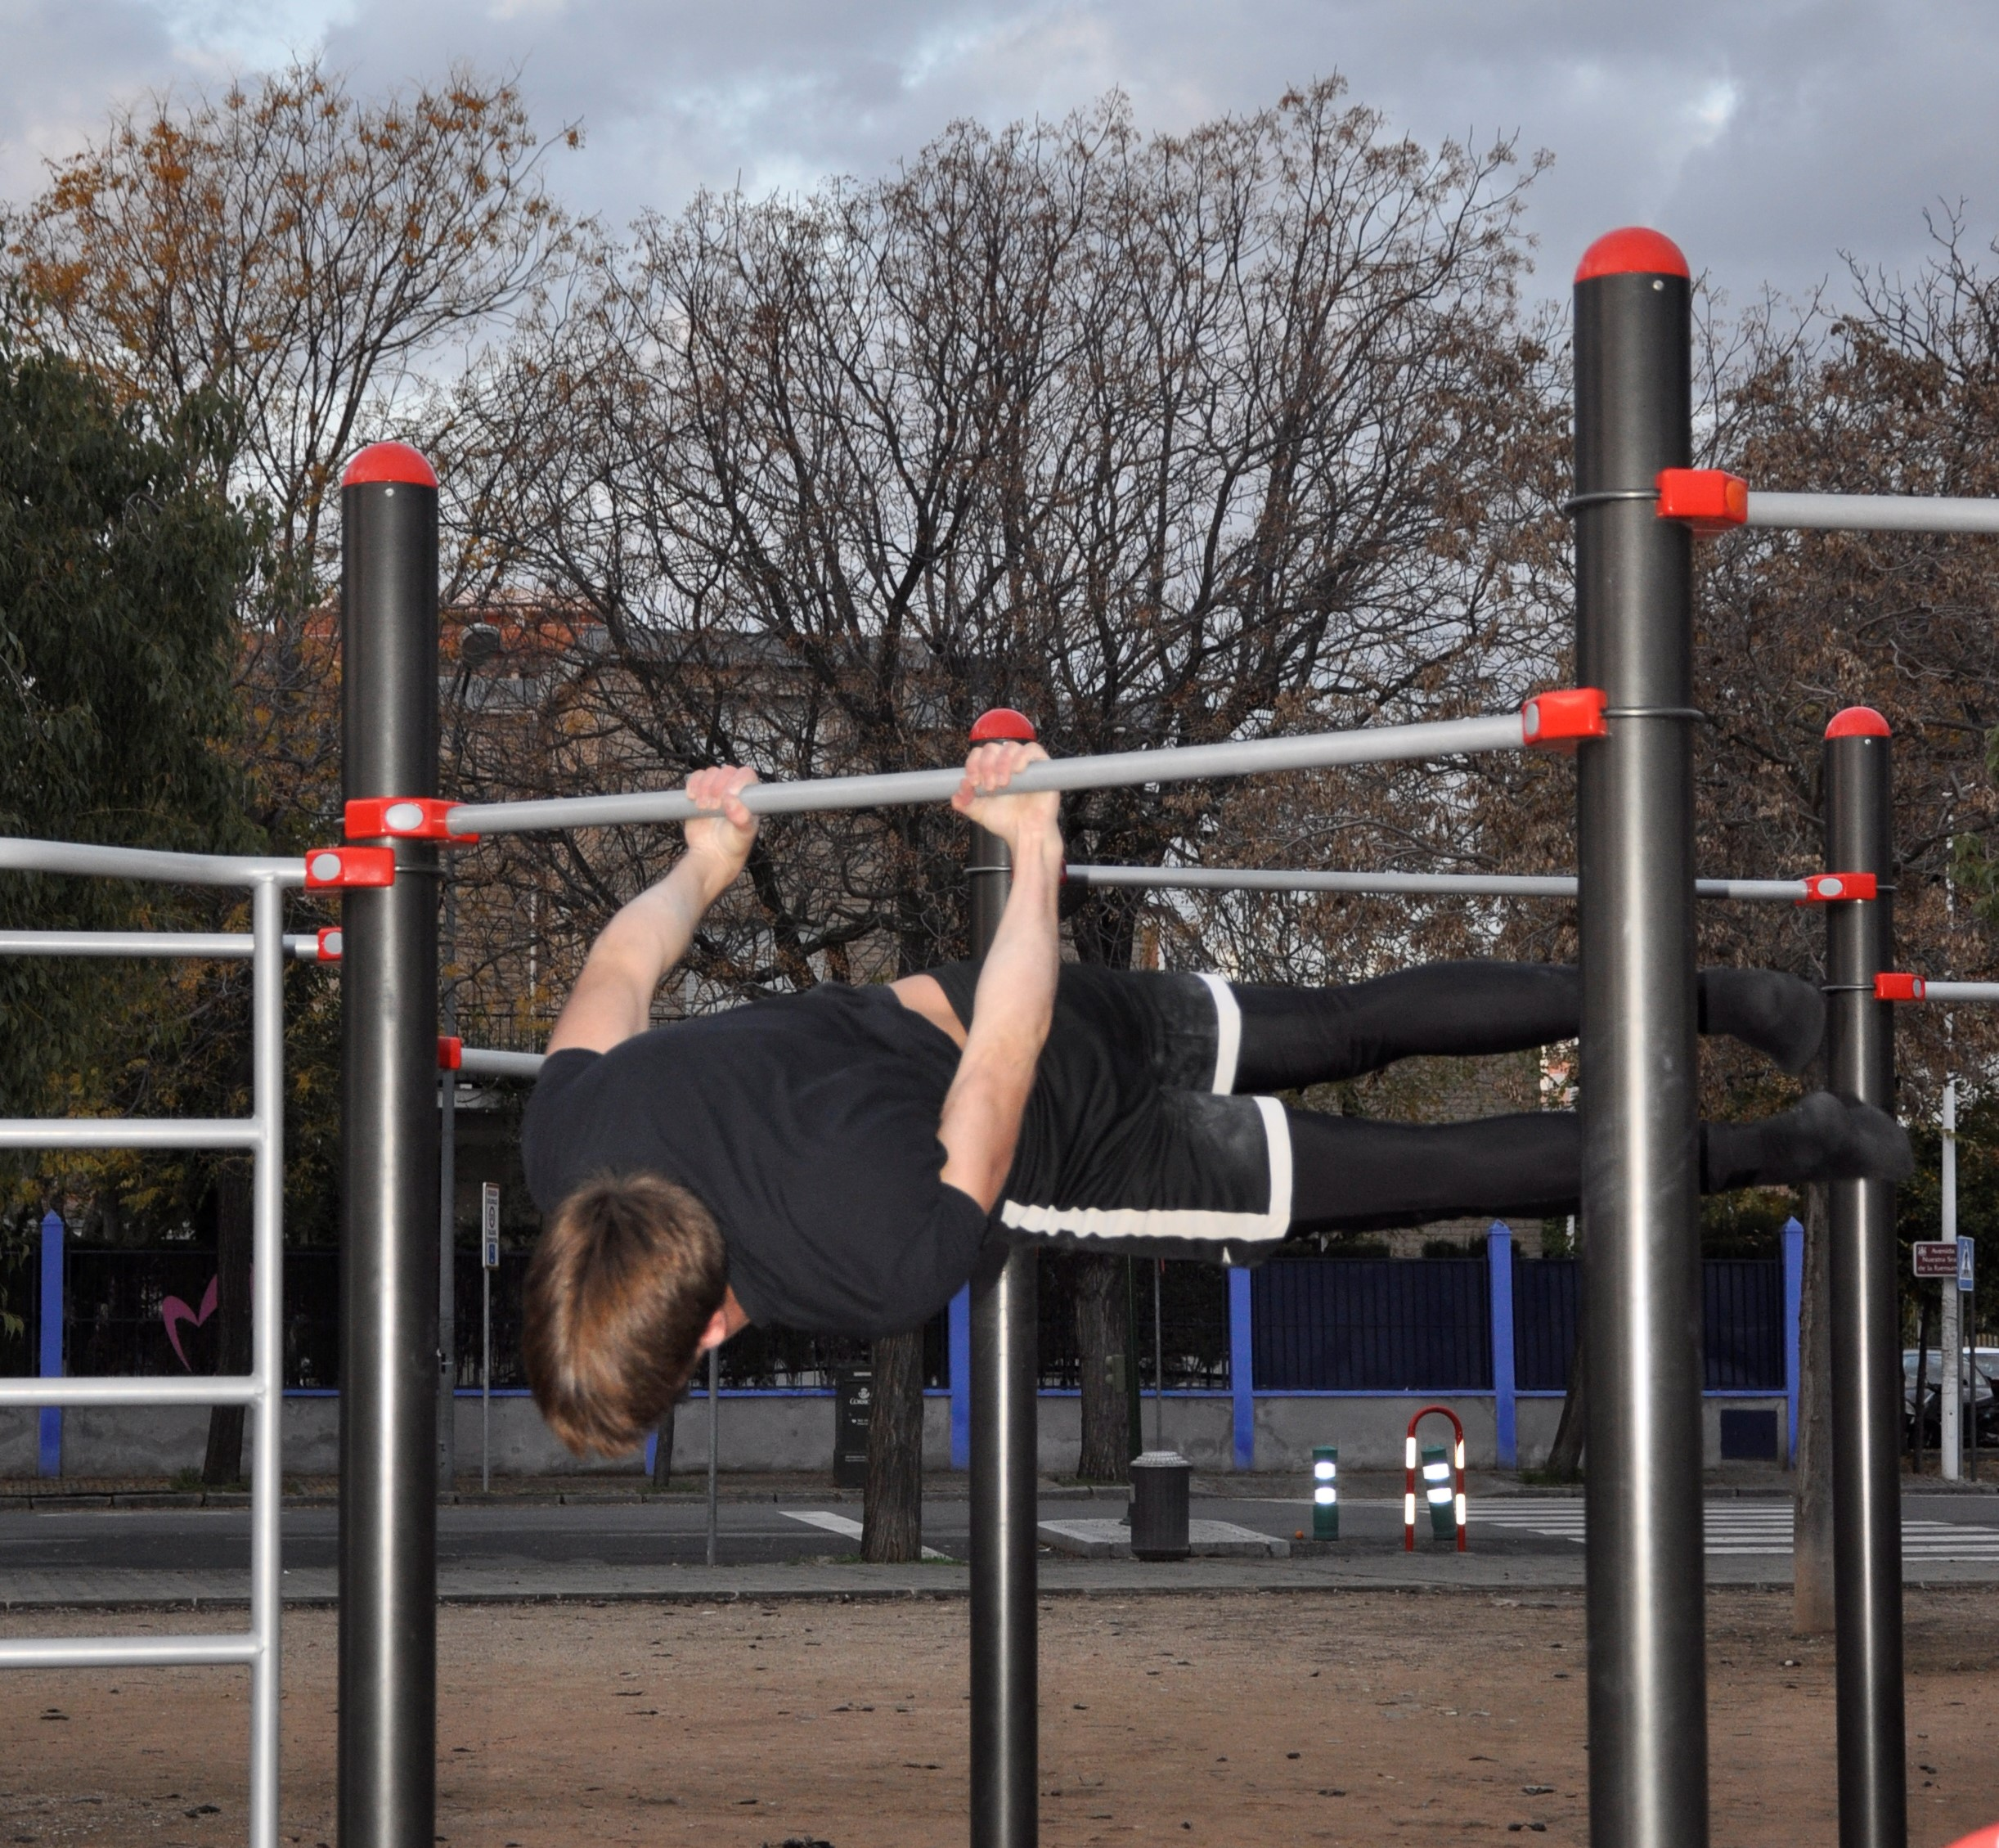 Puesta en valor Parque Street workout-Calistenia SURESTE